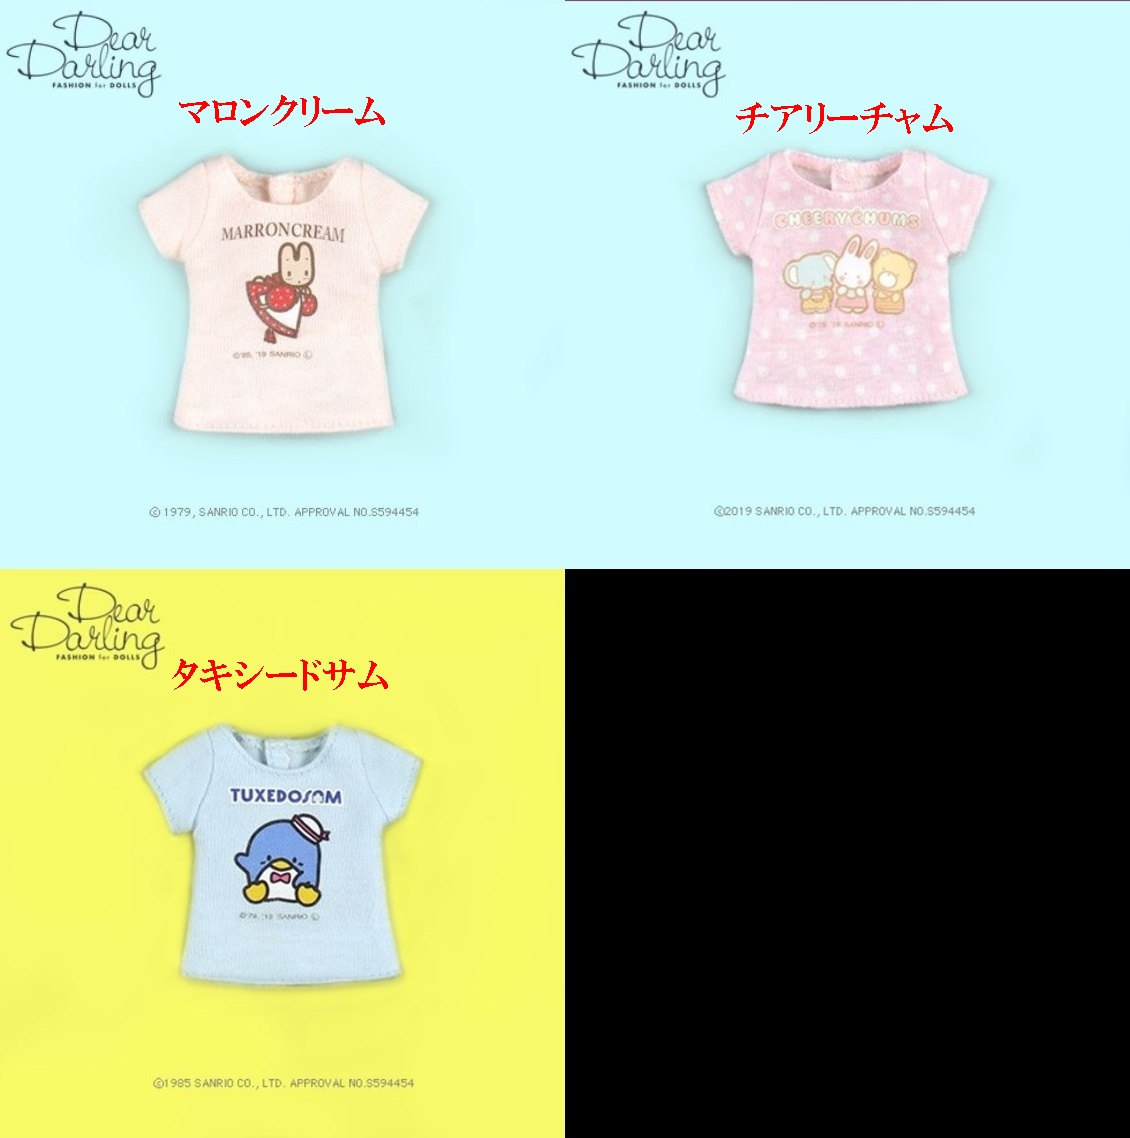 Dear Darling fashion for dolls「サンリオTシャツ第2弾」